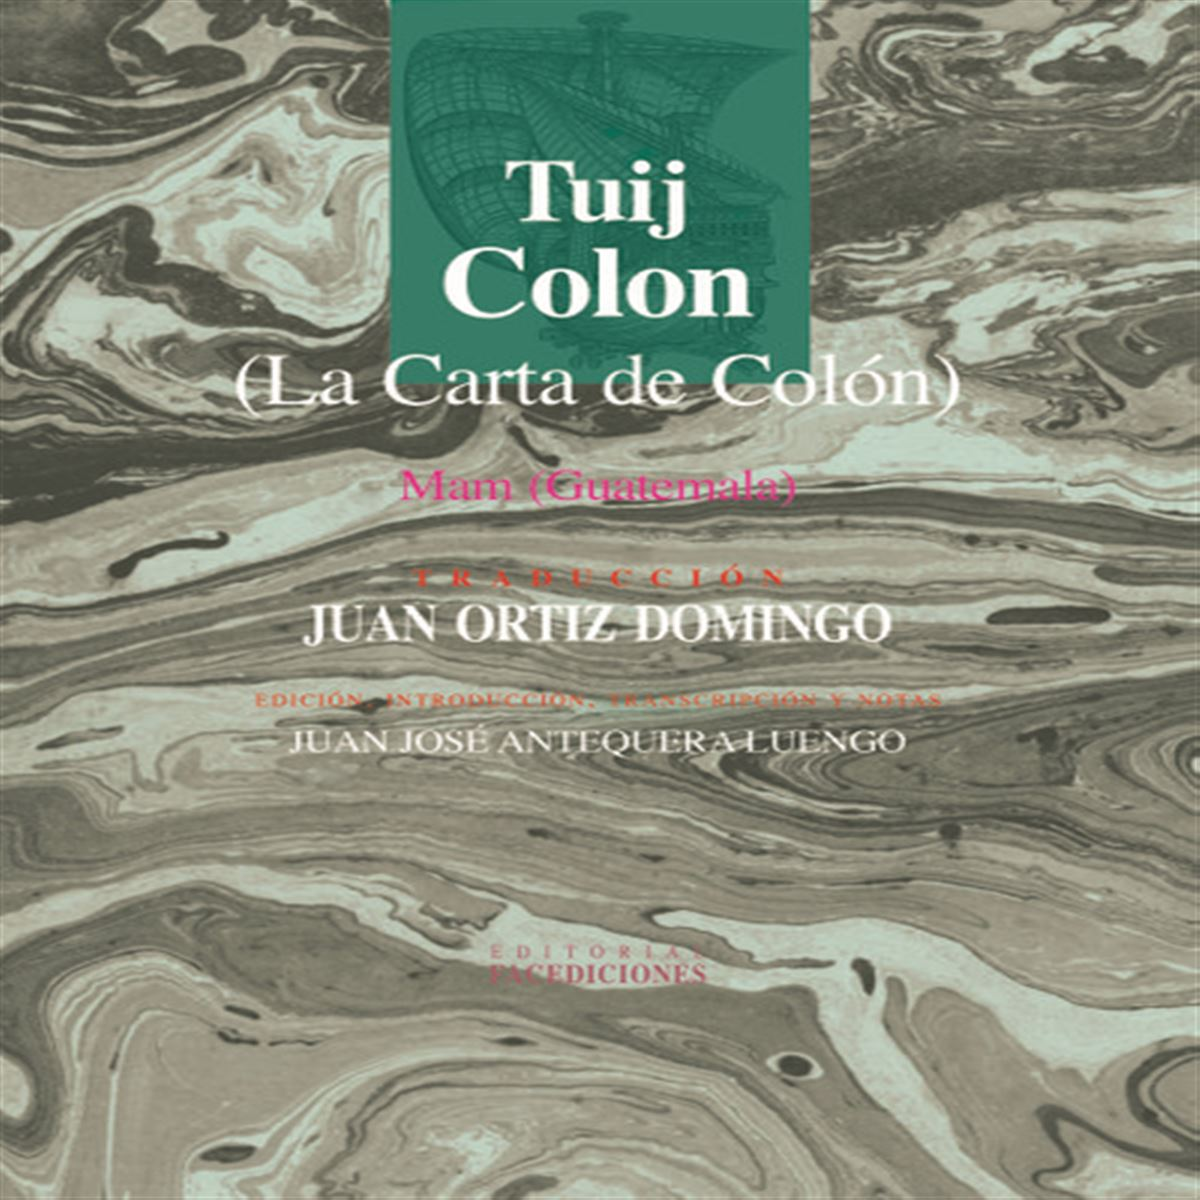 Tuij Colon (La Carta de Colón)